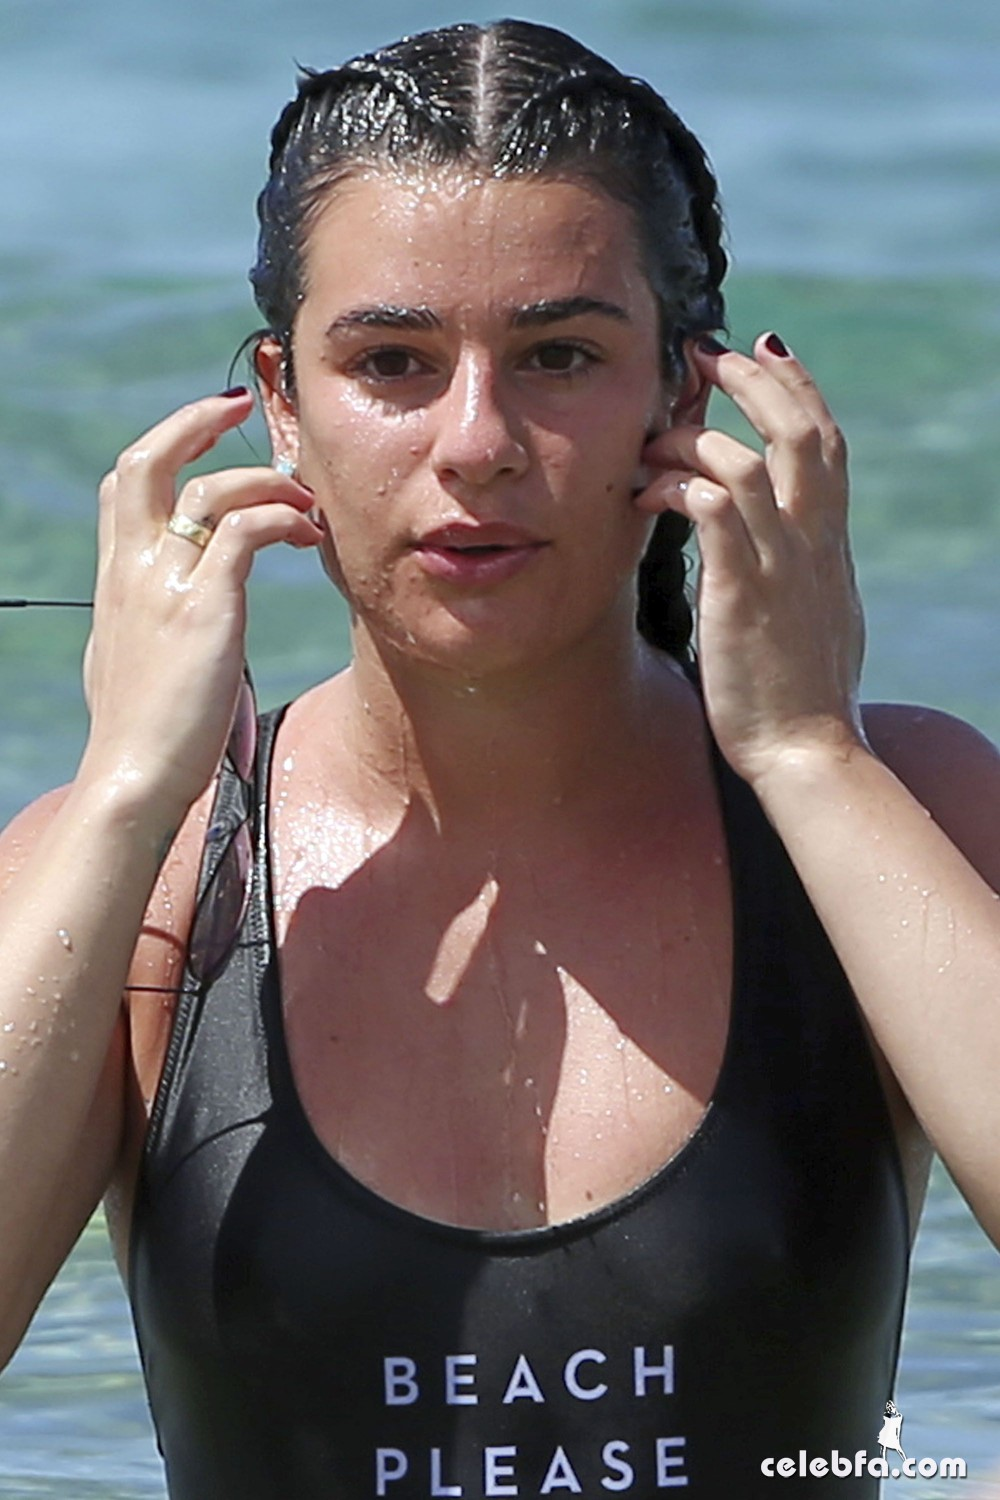 lea-michele-at-a-beach-in-hawaii-5